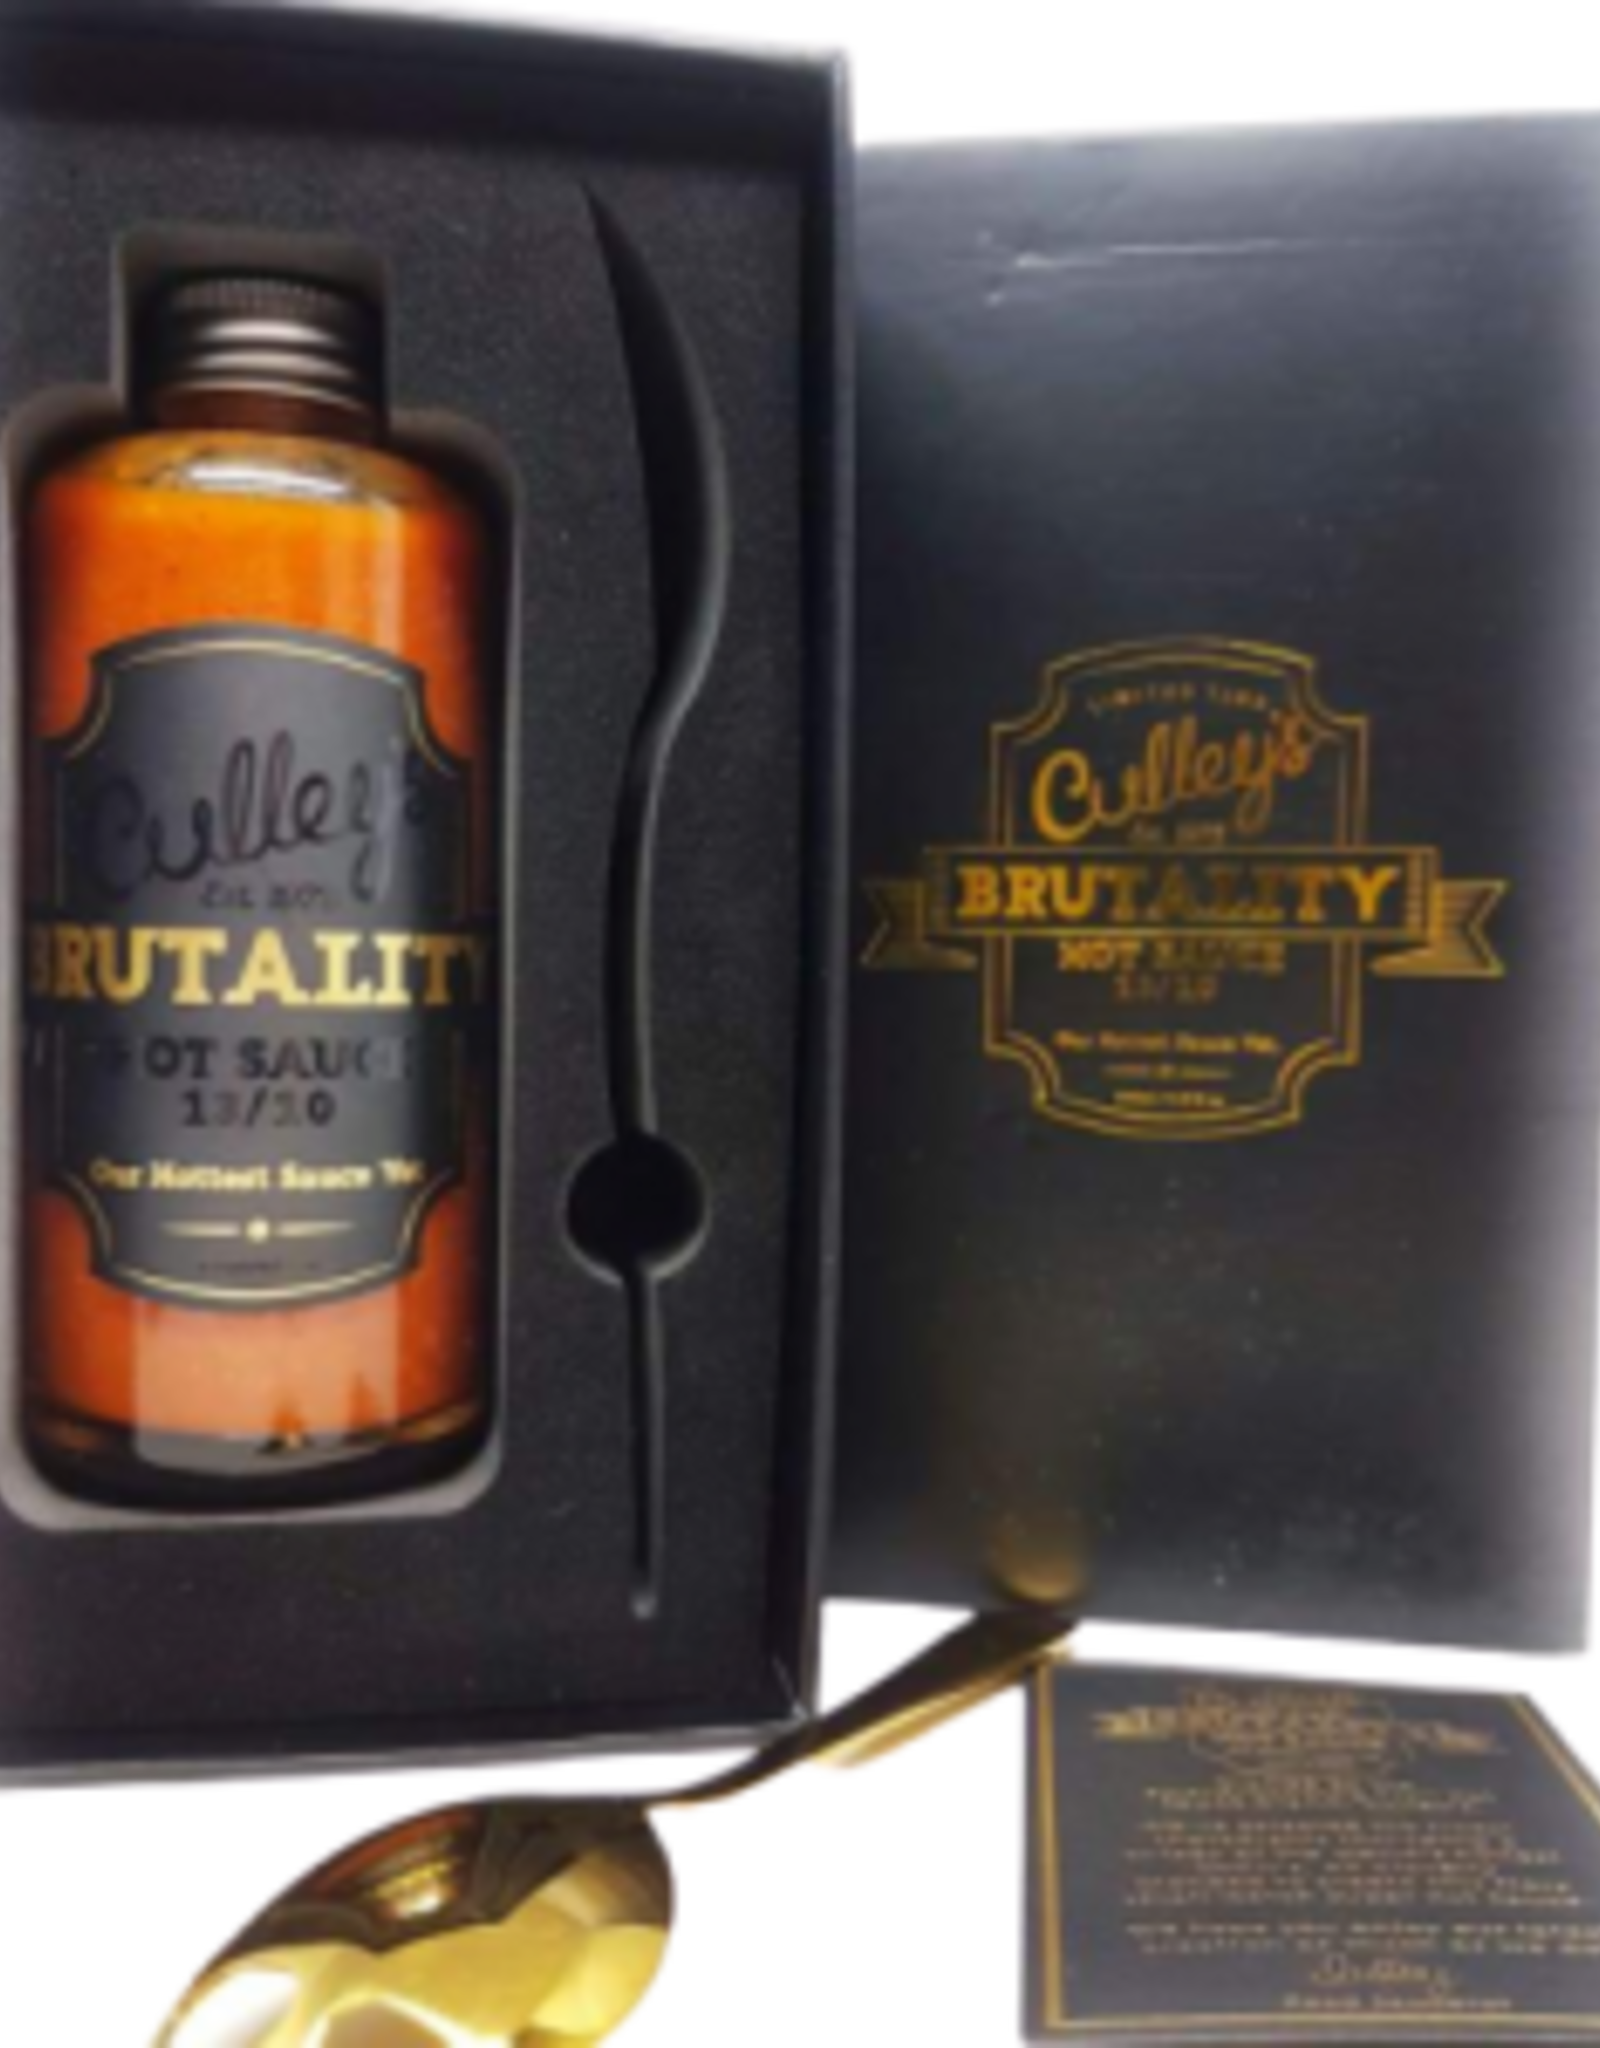 Culley's Brutality Box Set